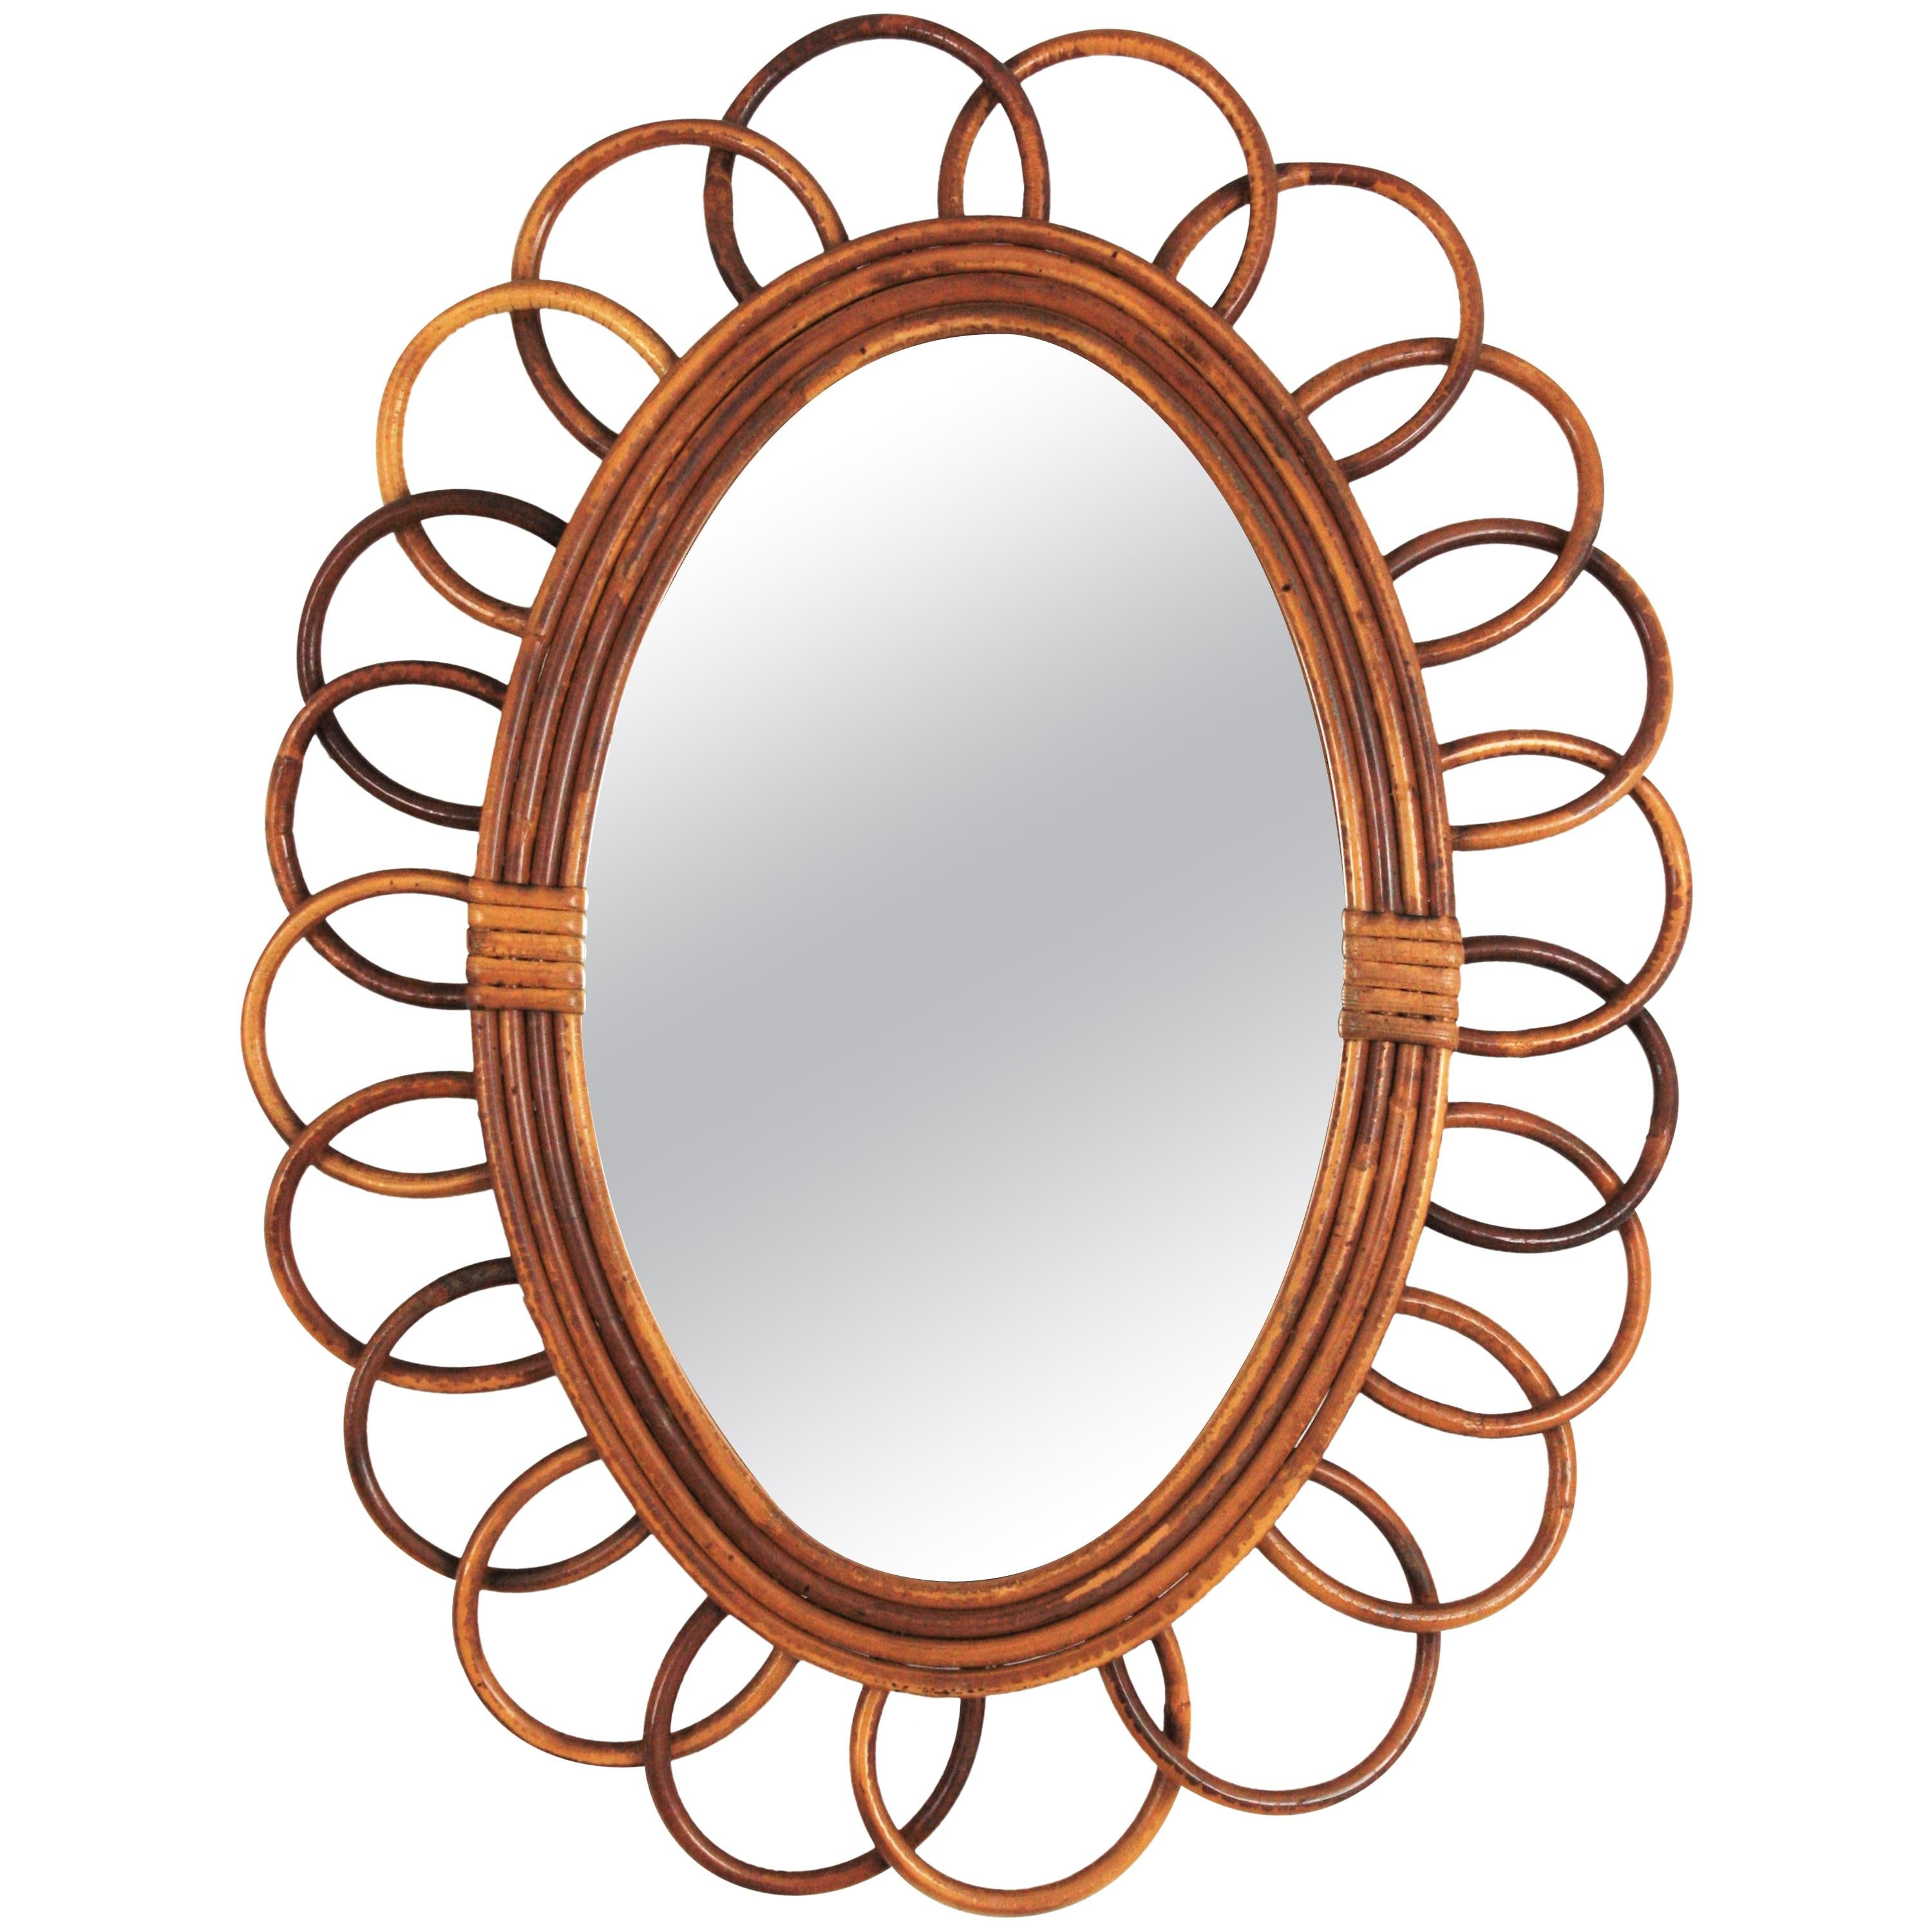 Rattan Oval Flower Mirror from France, 1960s